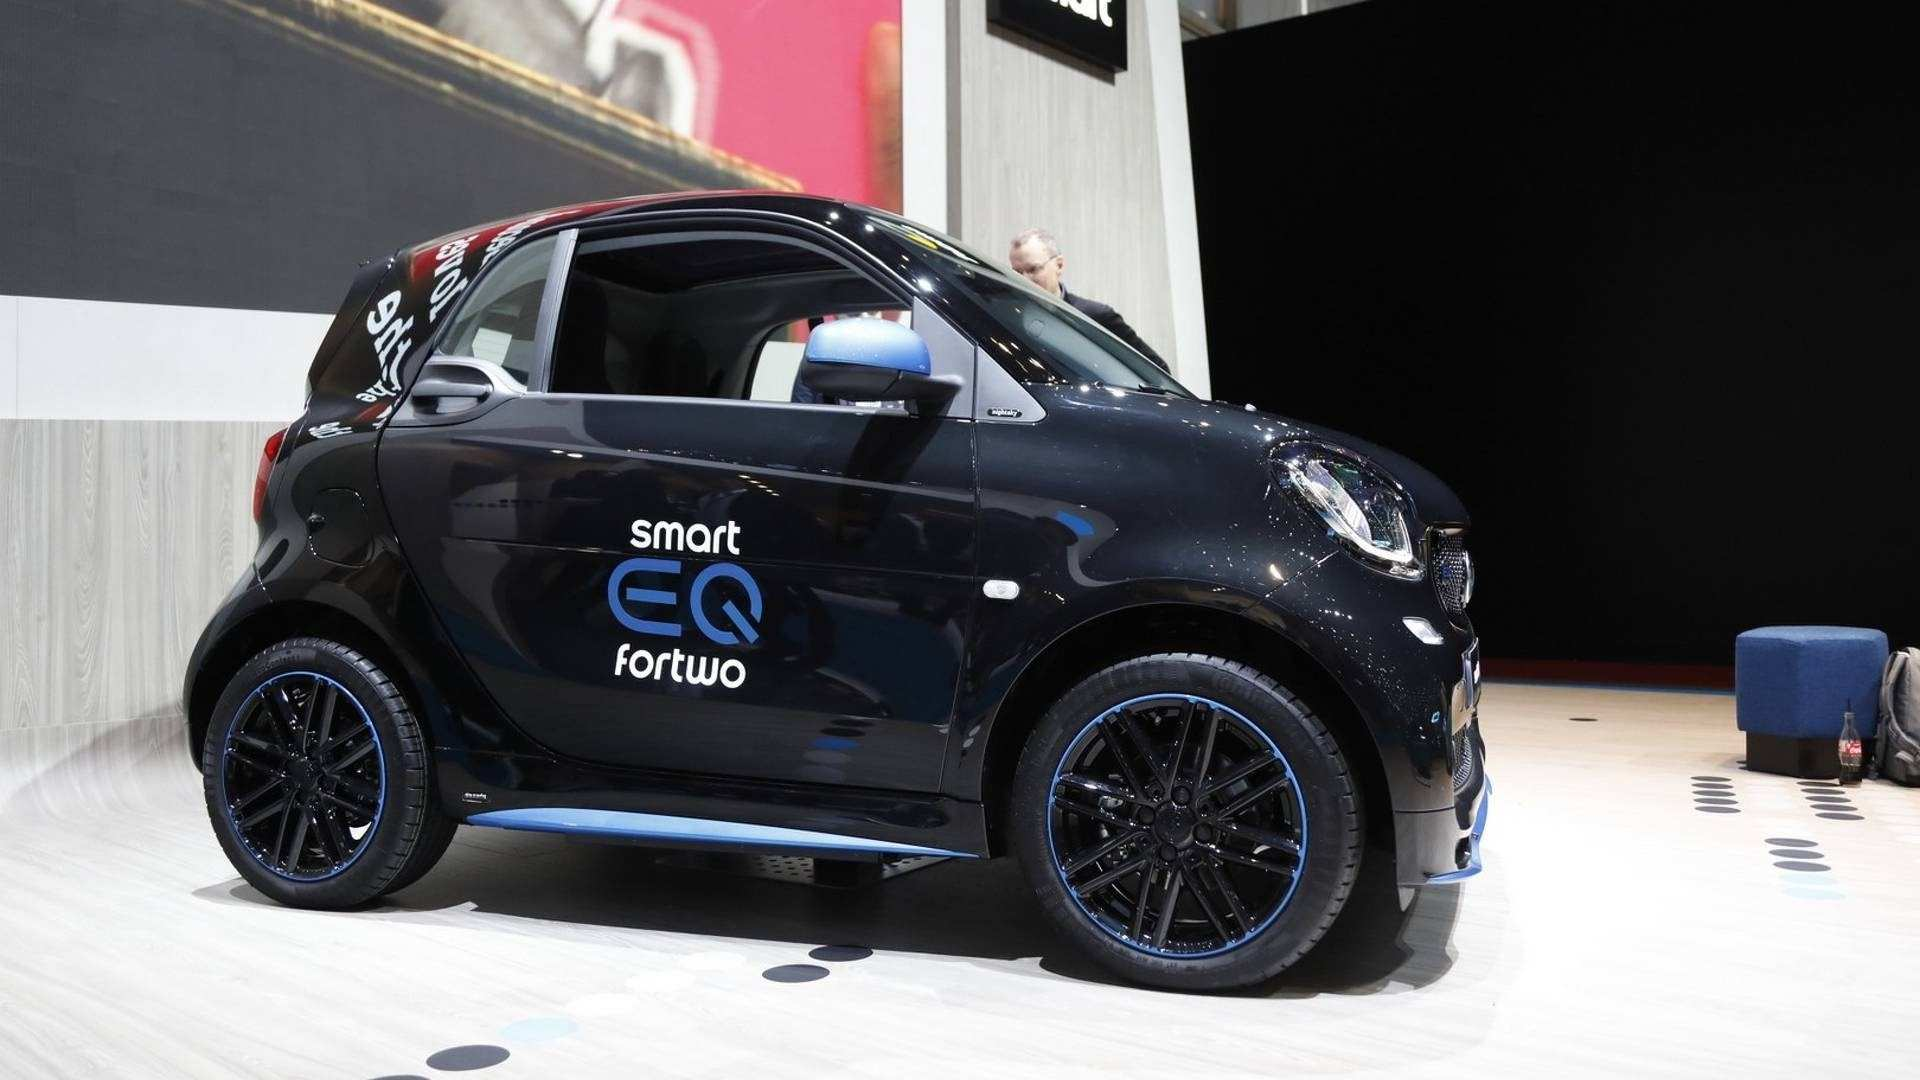 87 A 2020 Smart Fortwo Price And Release Date